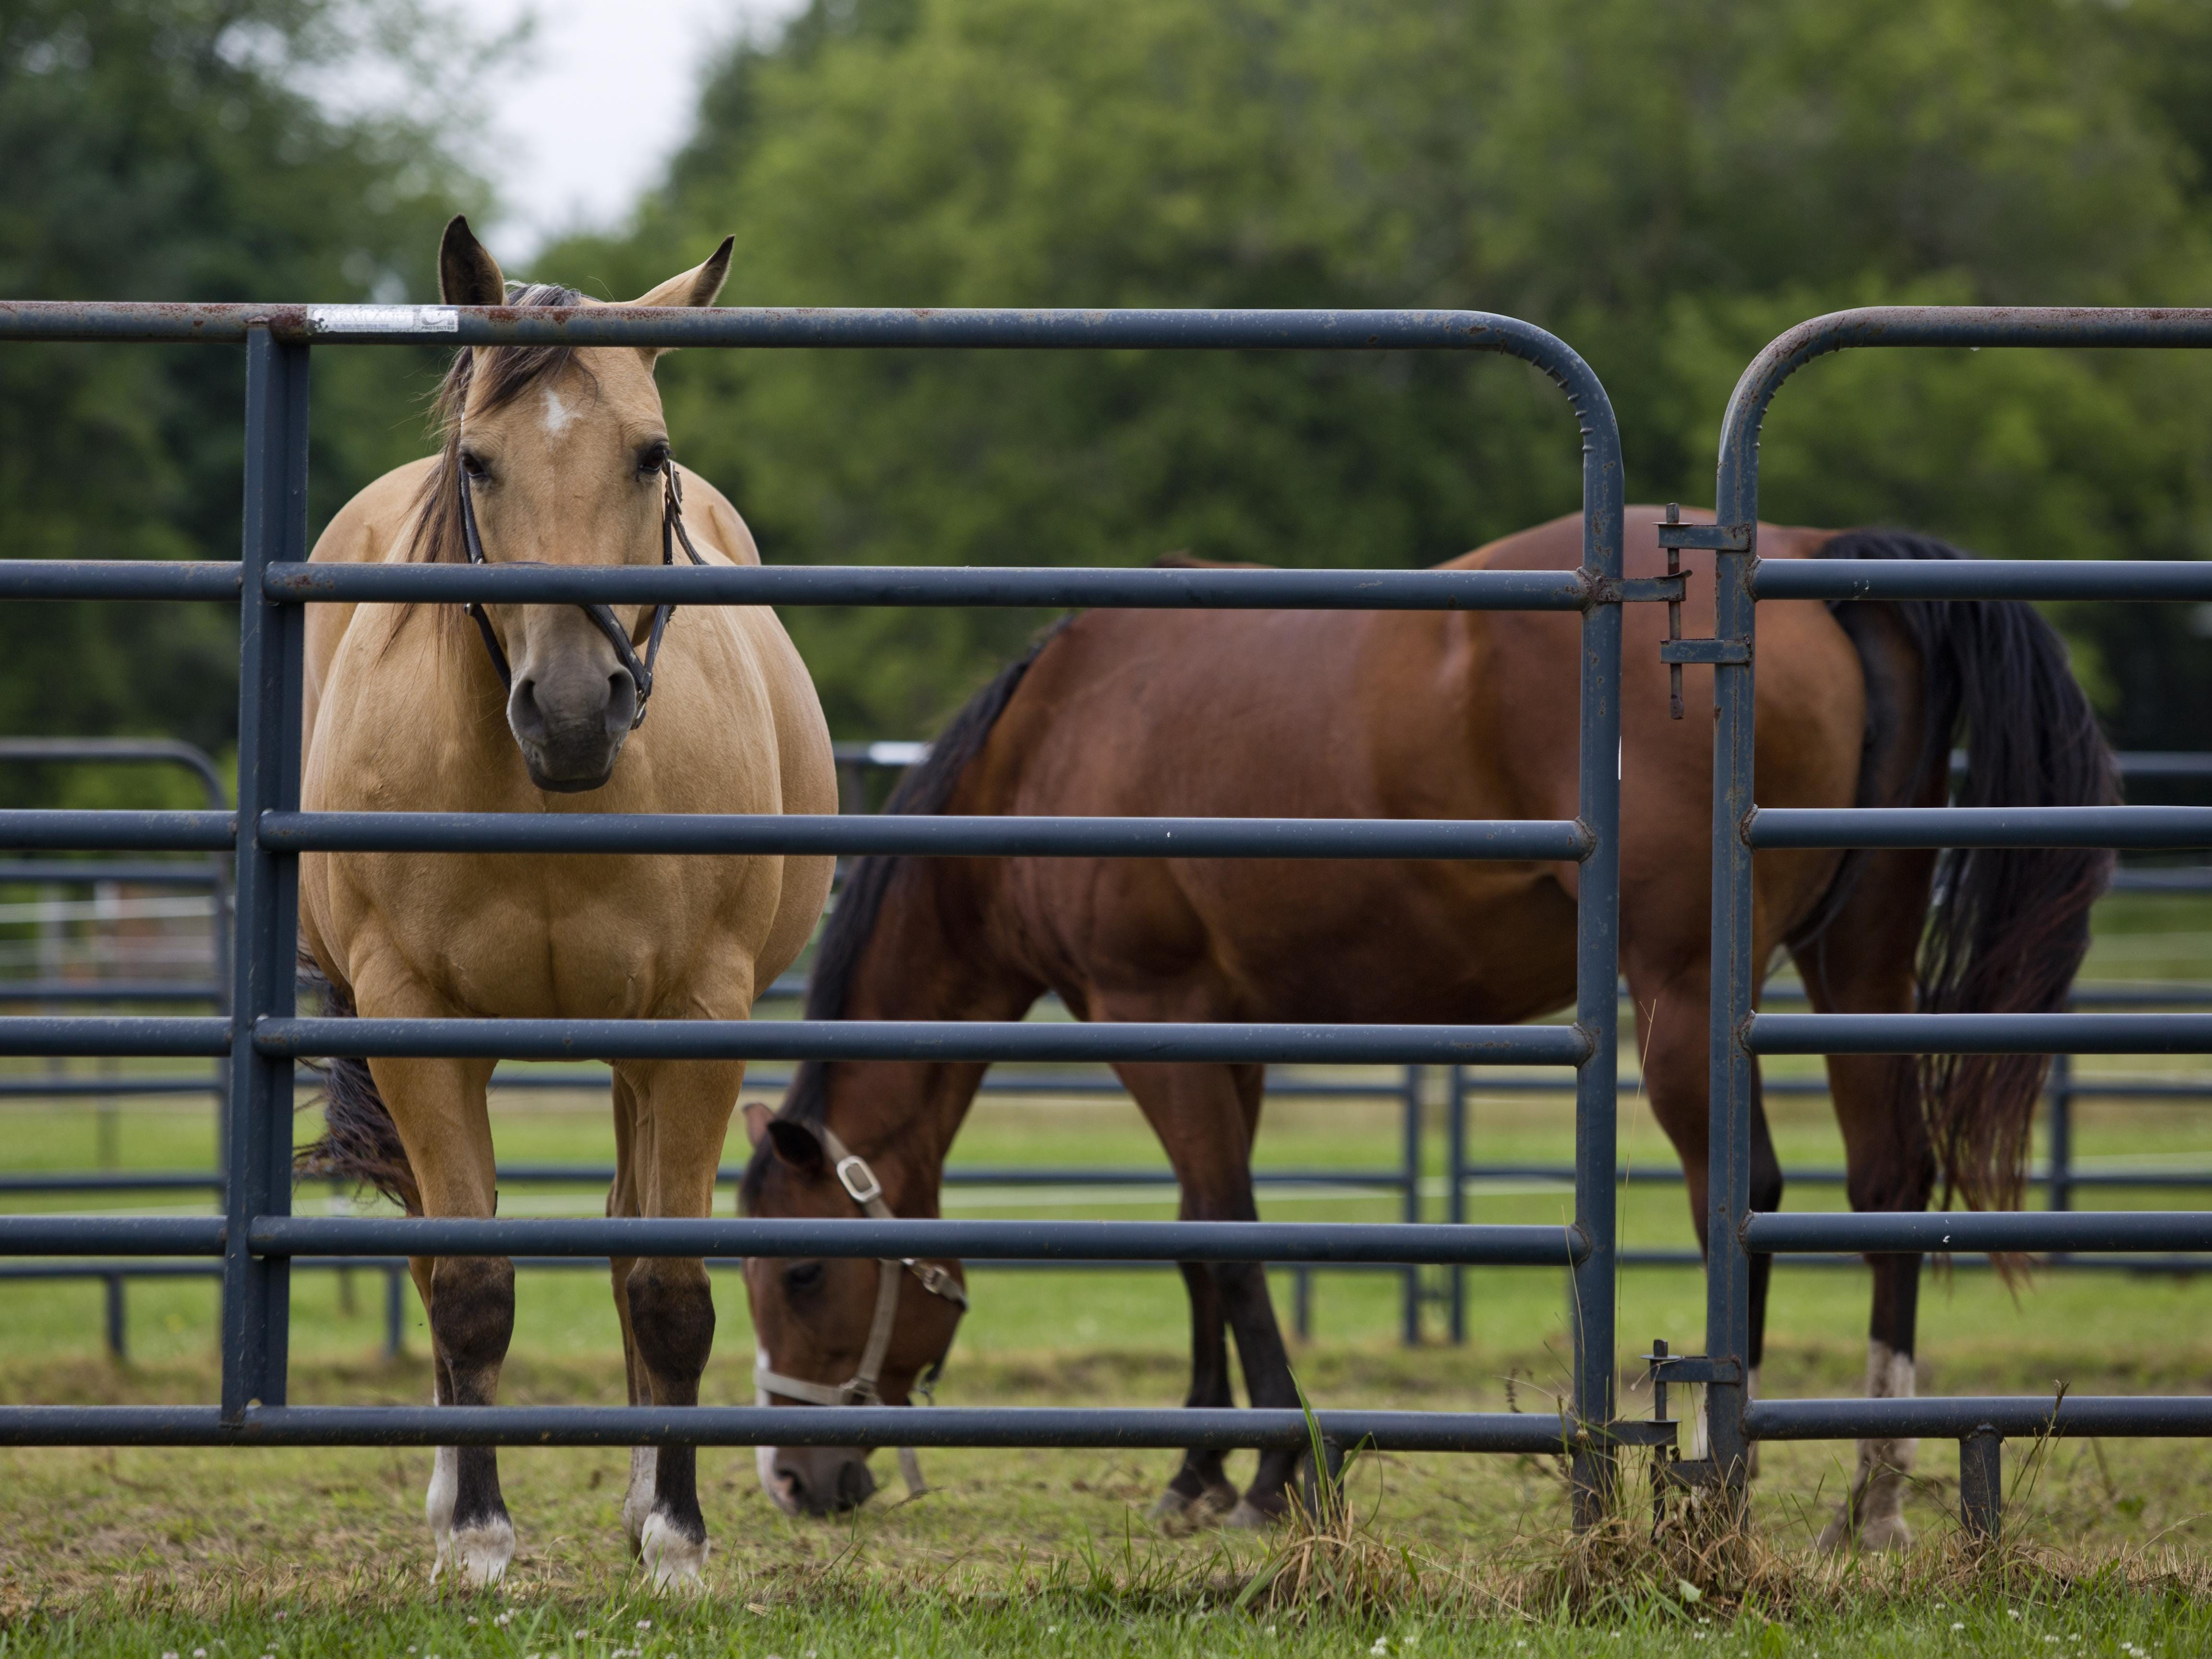 Horses graze in a field Wednesday, July 1, 2015 at Marine City girls track coach Kristen Humble's home and ranch in Clyde Township.